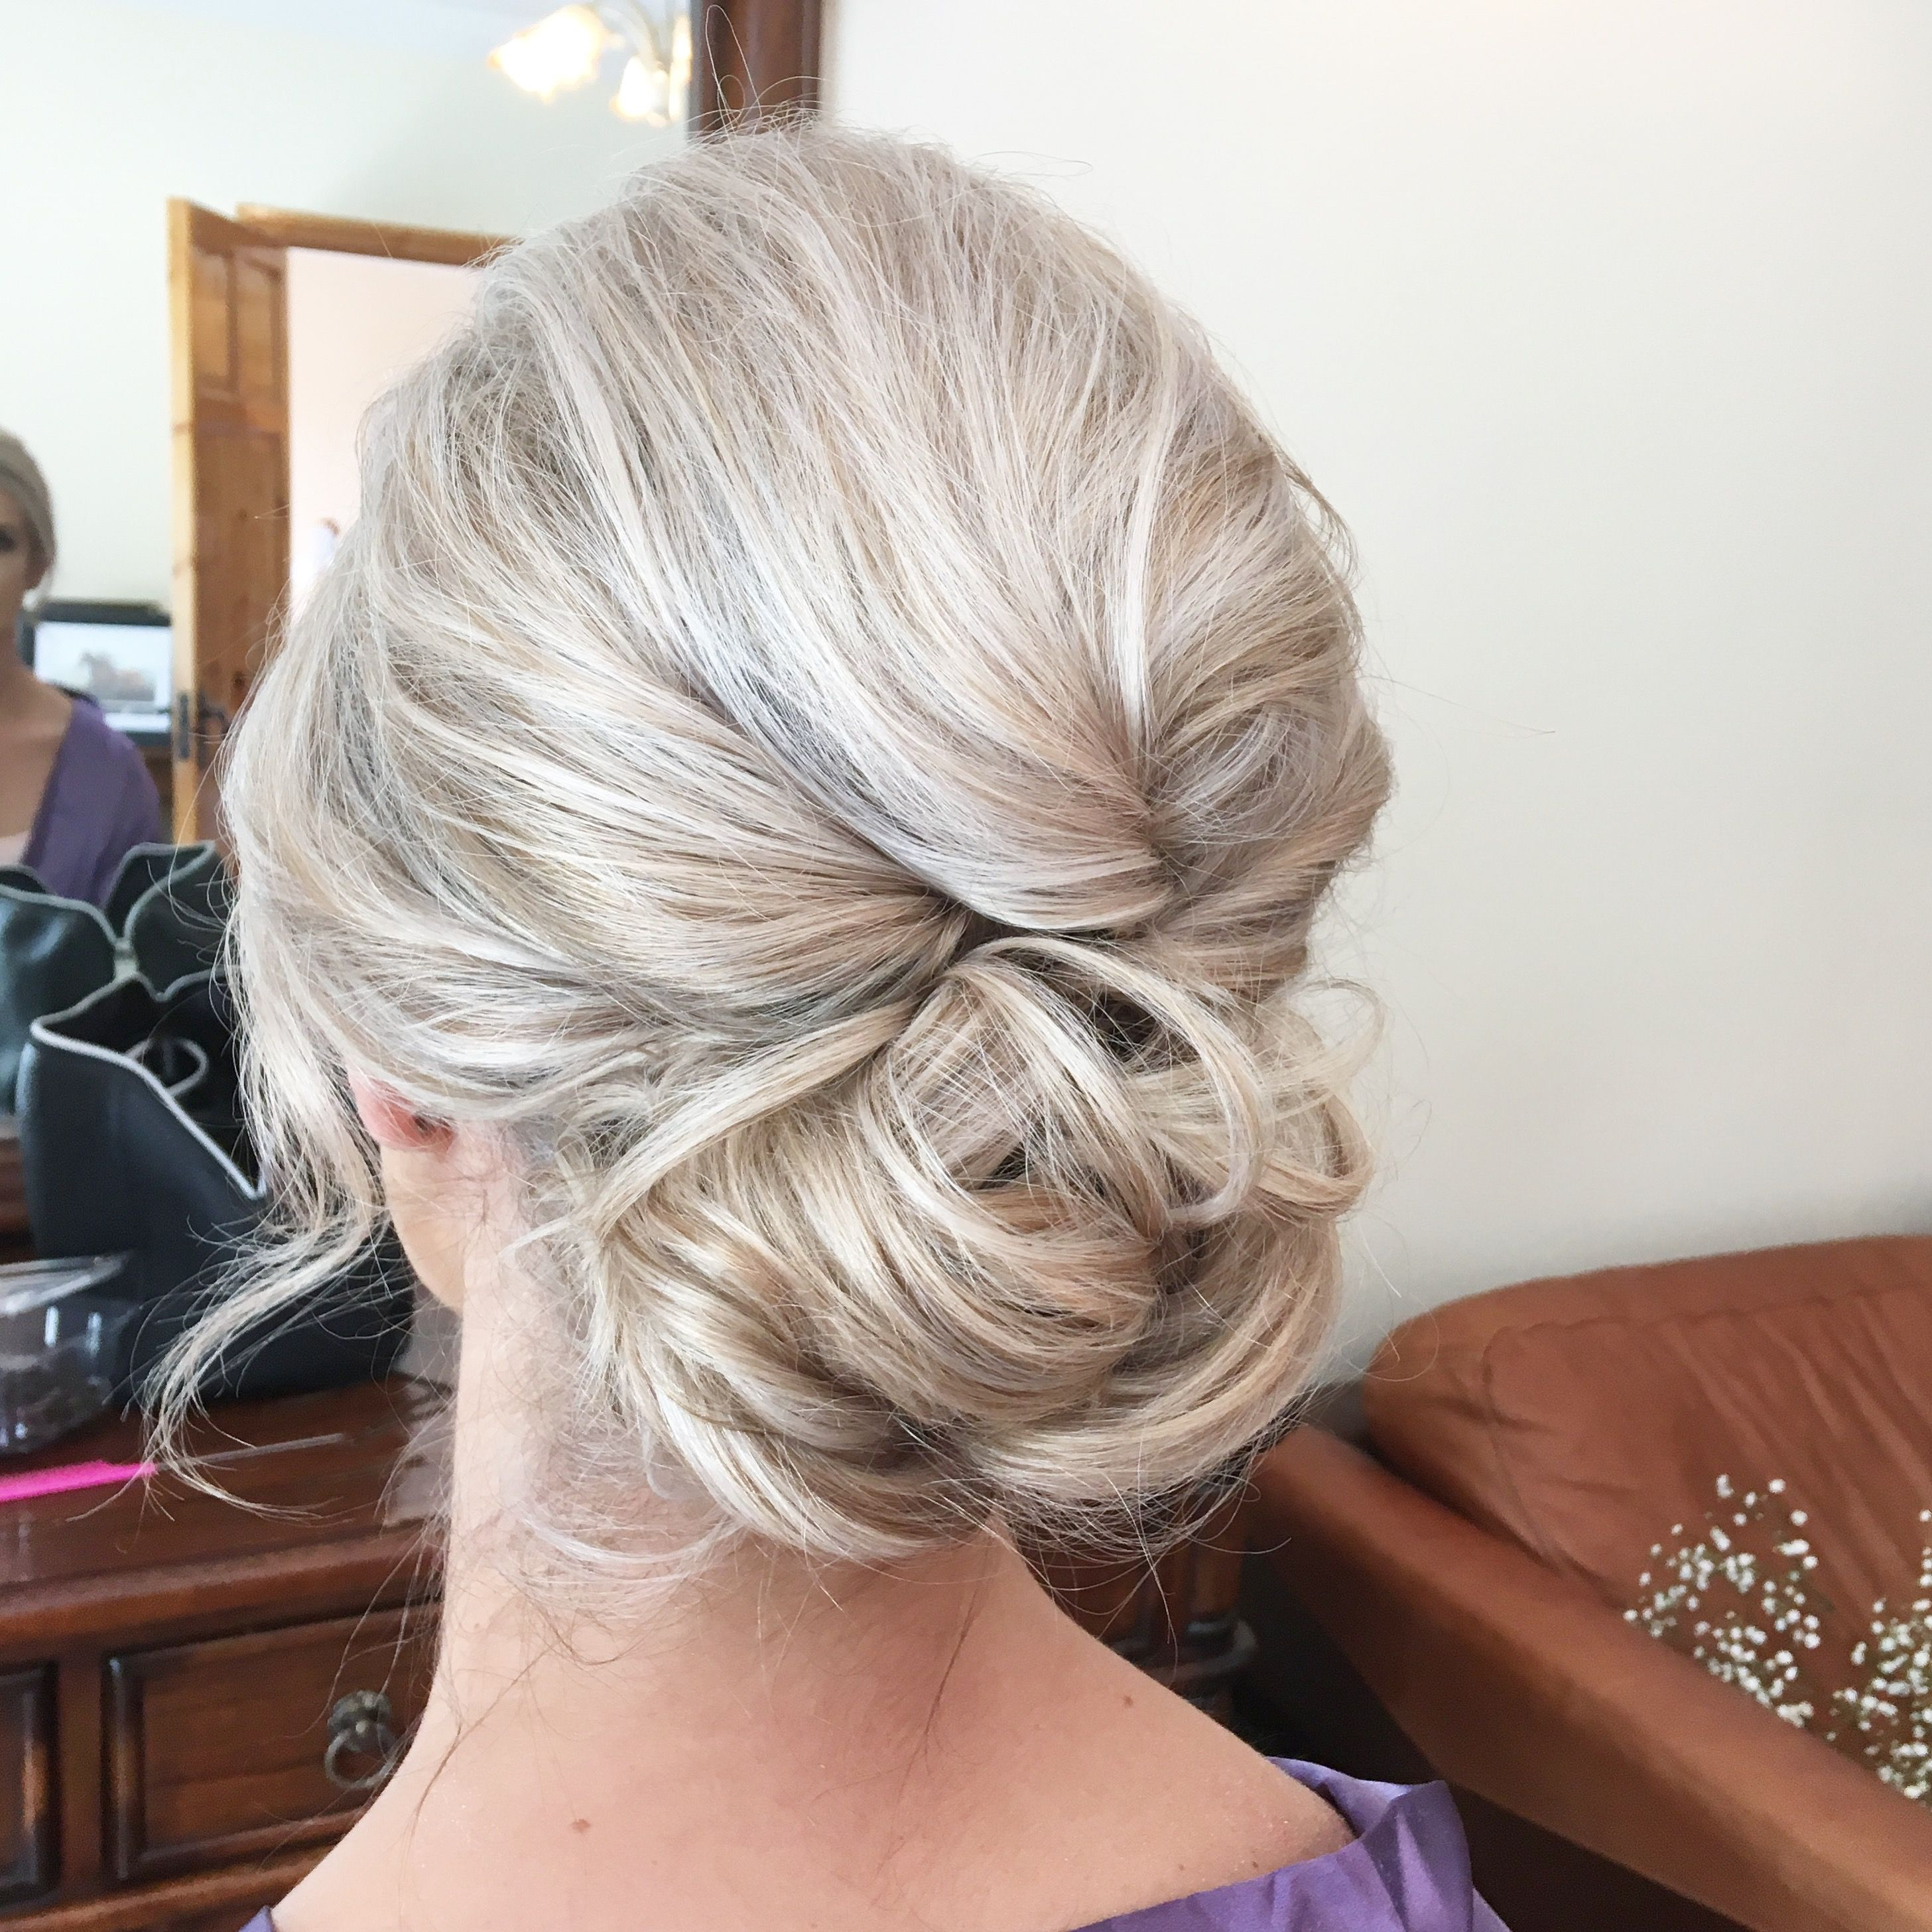 tousled textured wedding updo hairstyle | bridesmaid hair